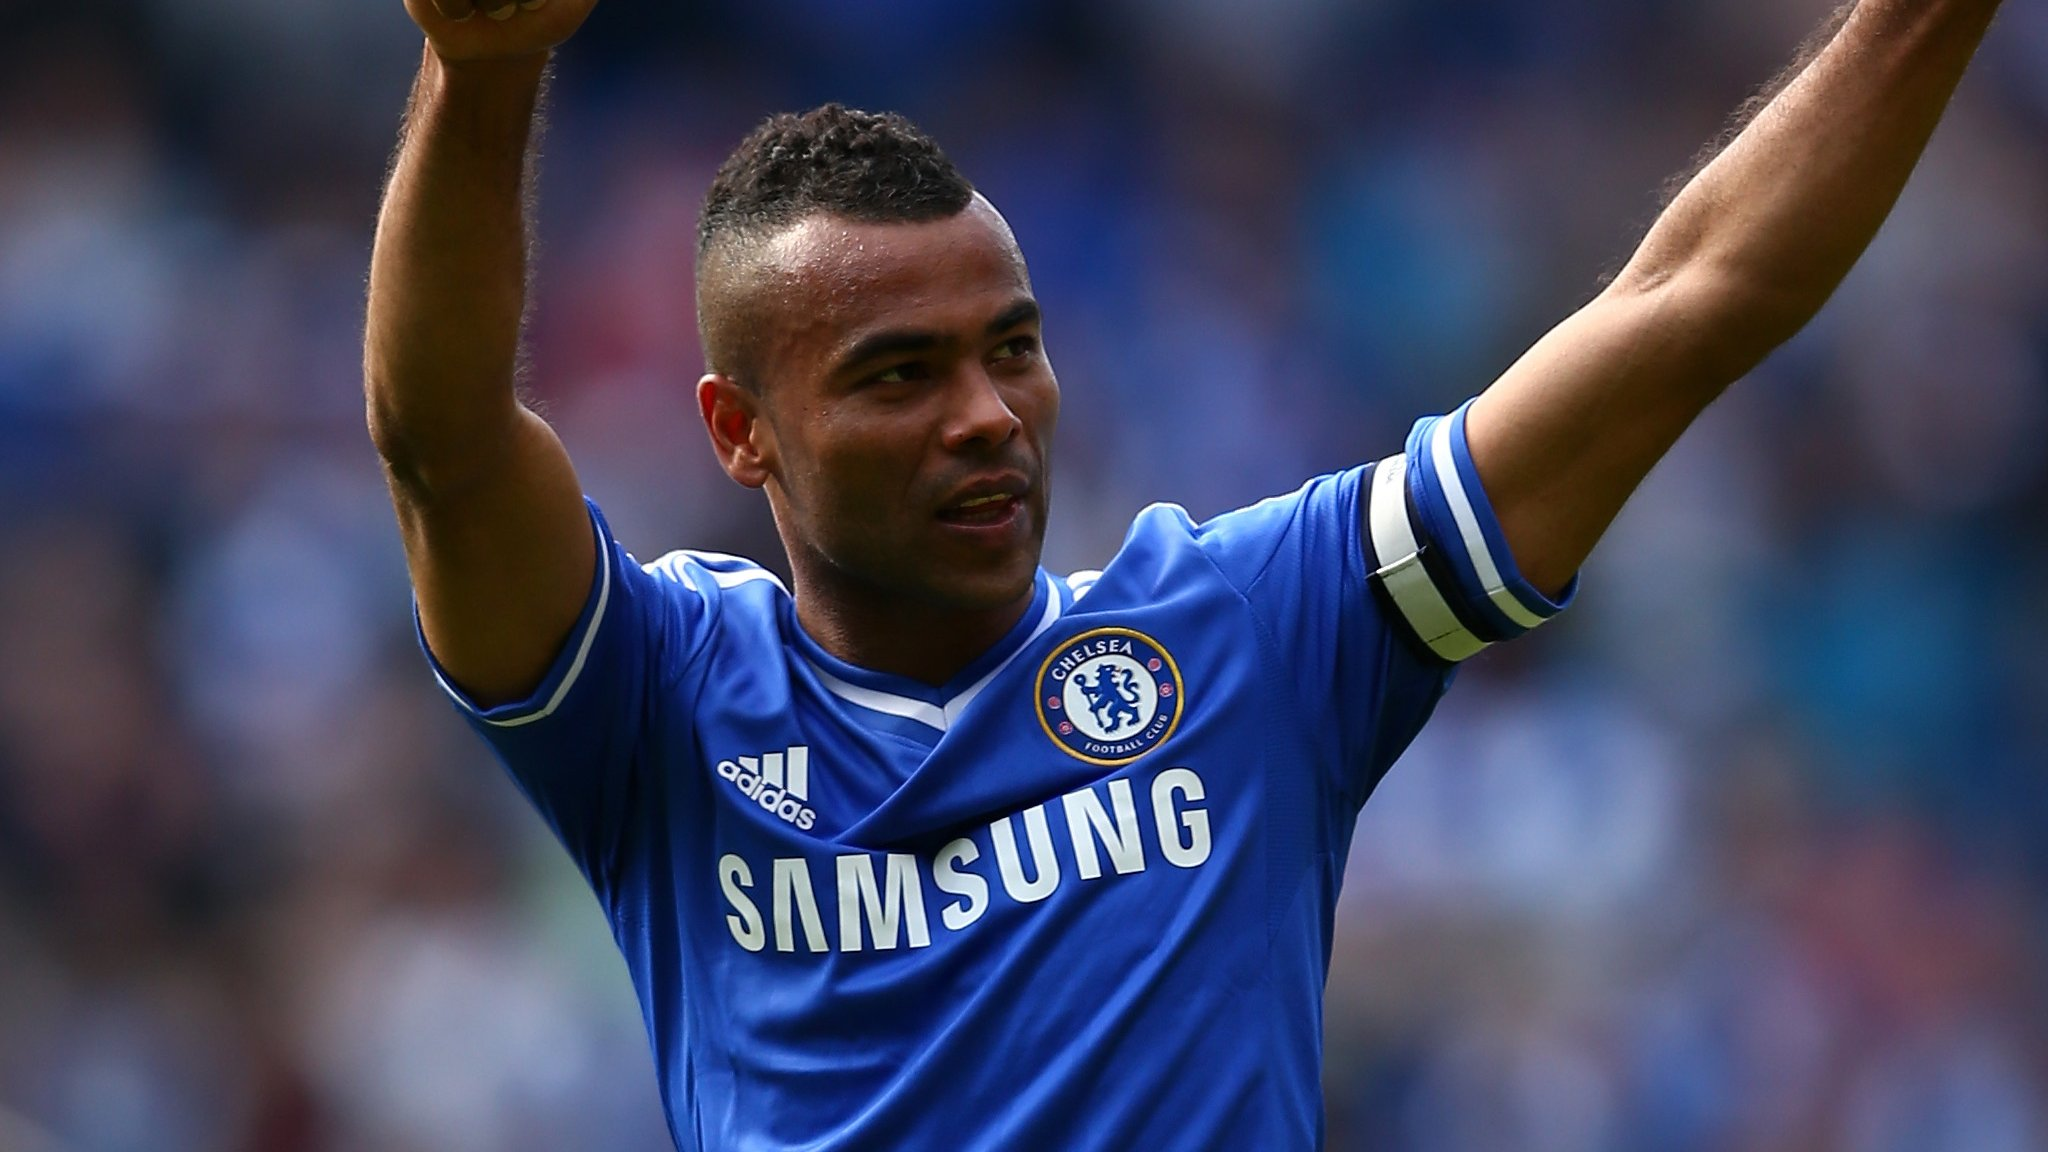 Ashley Cole: Former England left-back to retire after Derby County stint